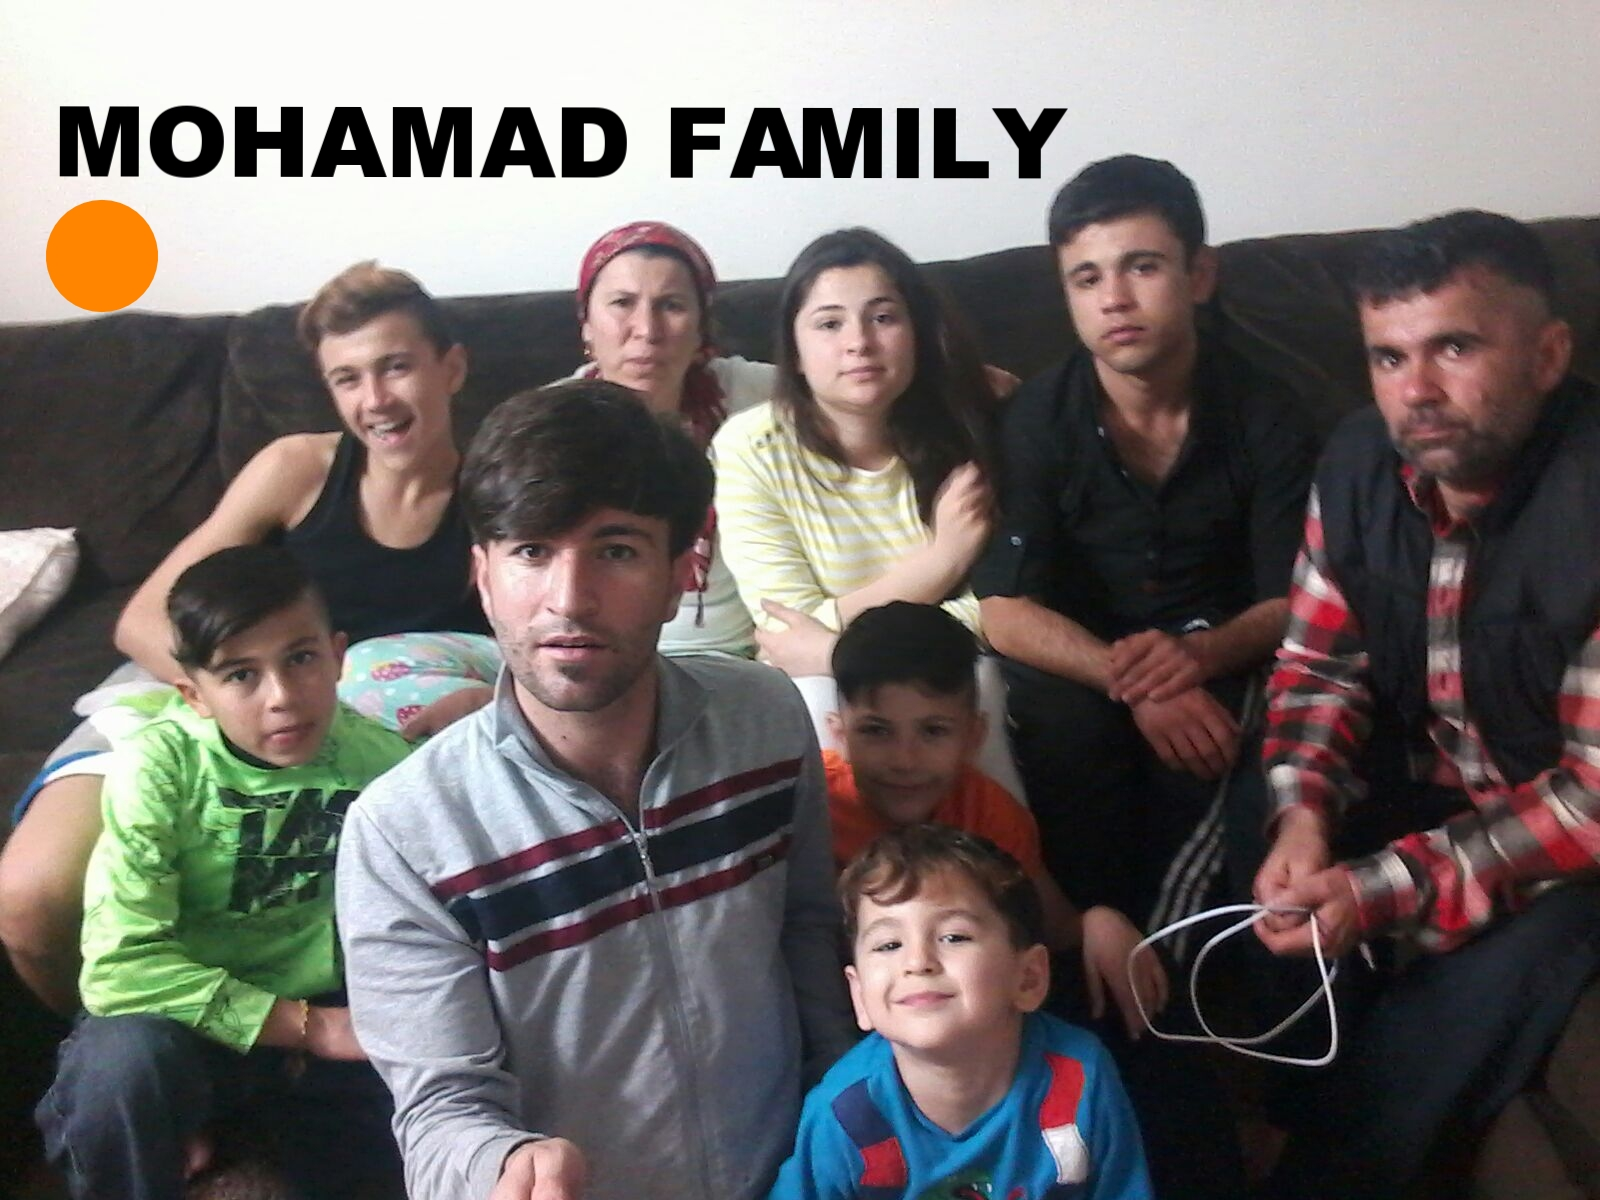 New Arrival Syrian refugee family of NINE! Mom, dad, six sons and a daughter. These people need HOUSEHOLD CLEANING and PERSONAL CARE supplies.